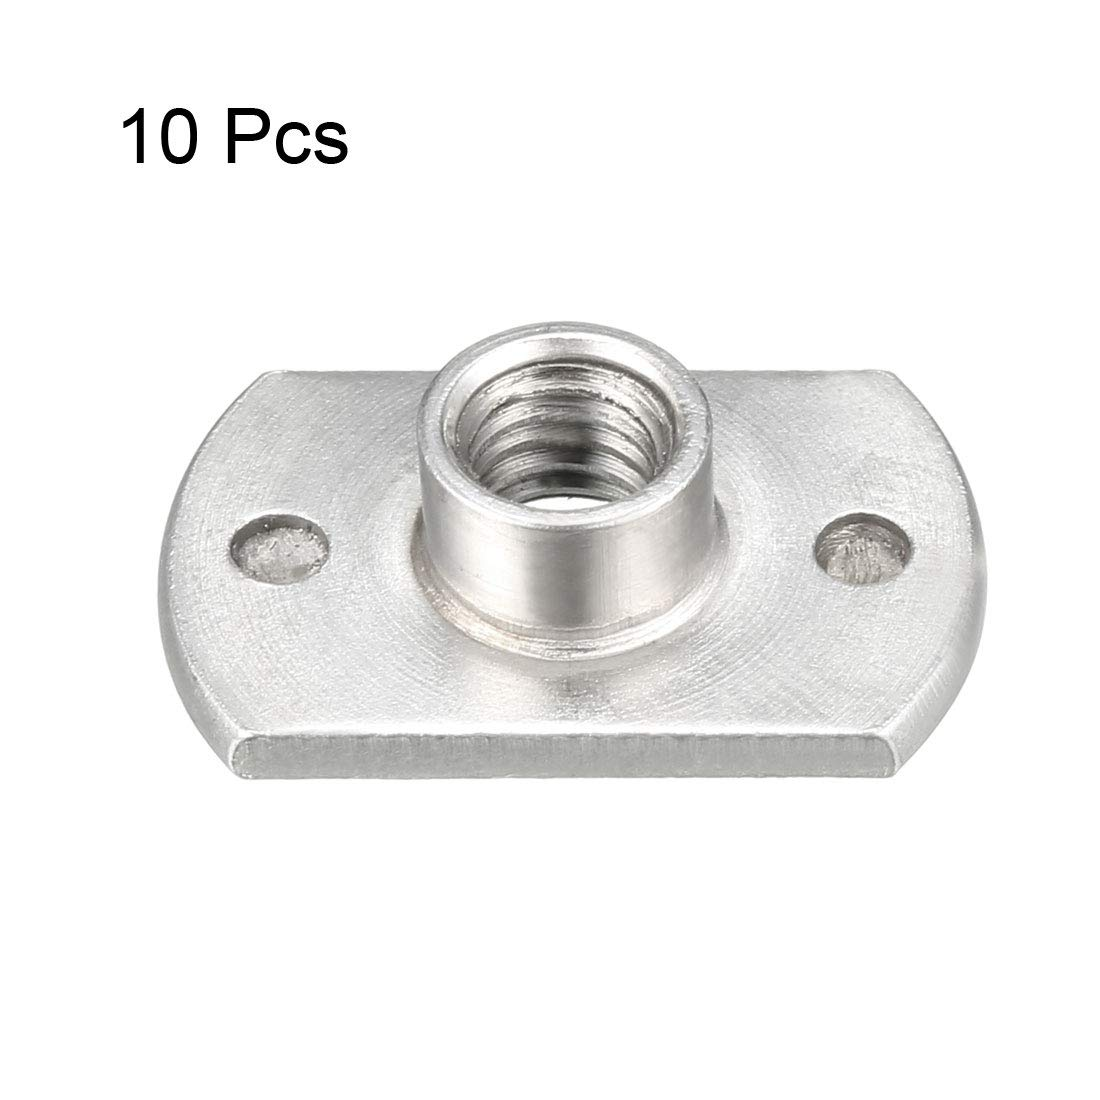 uxcell M8 Square Nuts Carbon Steel Machine Screw Weld Nut Pack of 20